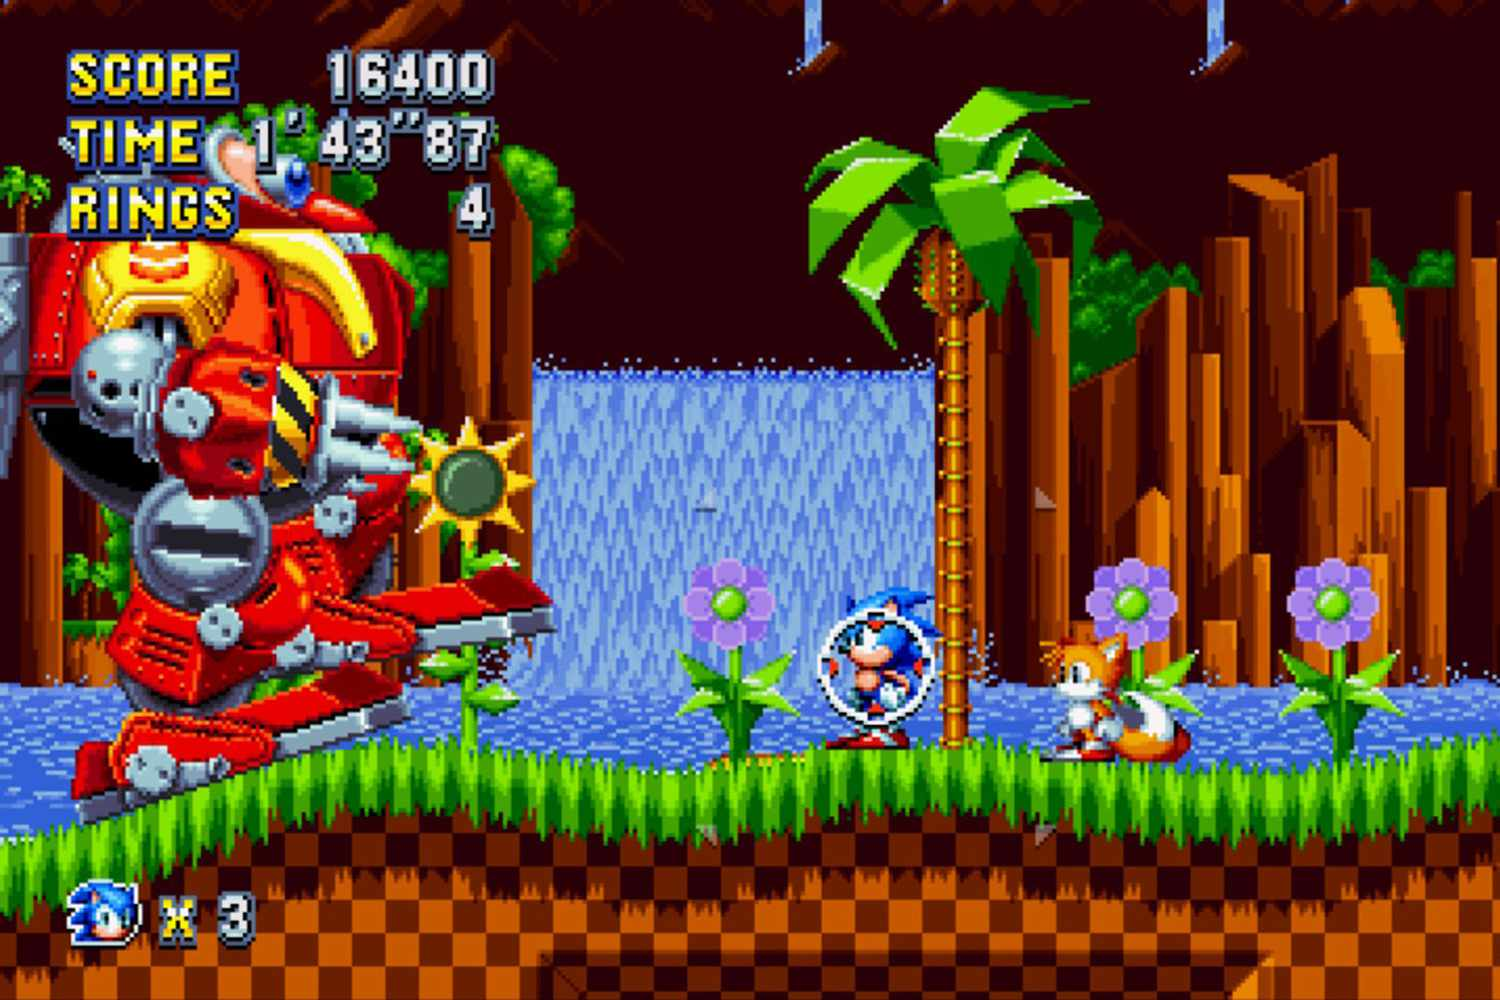 Sonic Mania Review The Gaming Icon Recalls His 16 Bit Glory Days